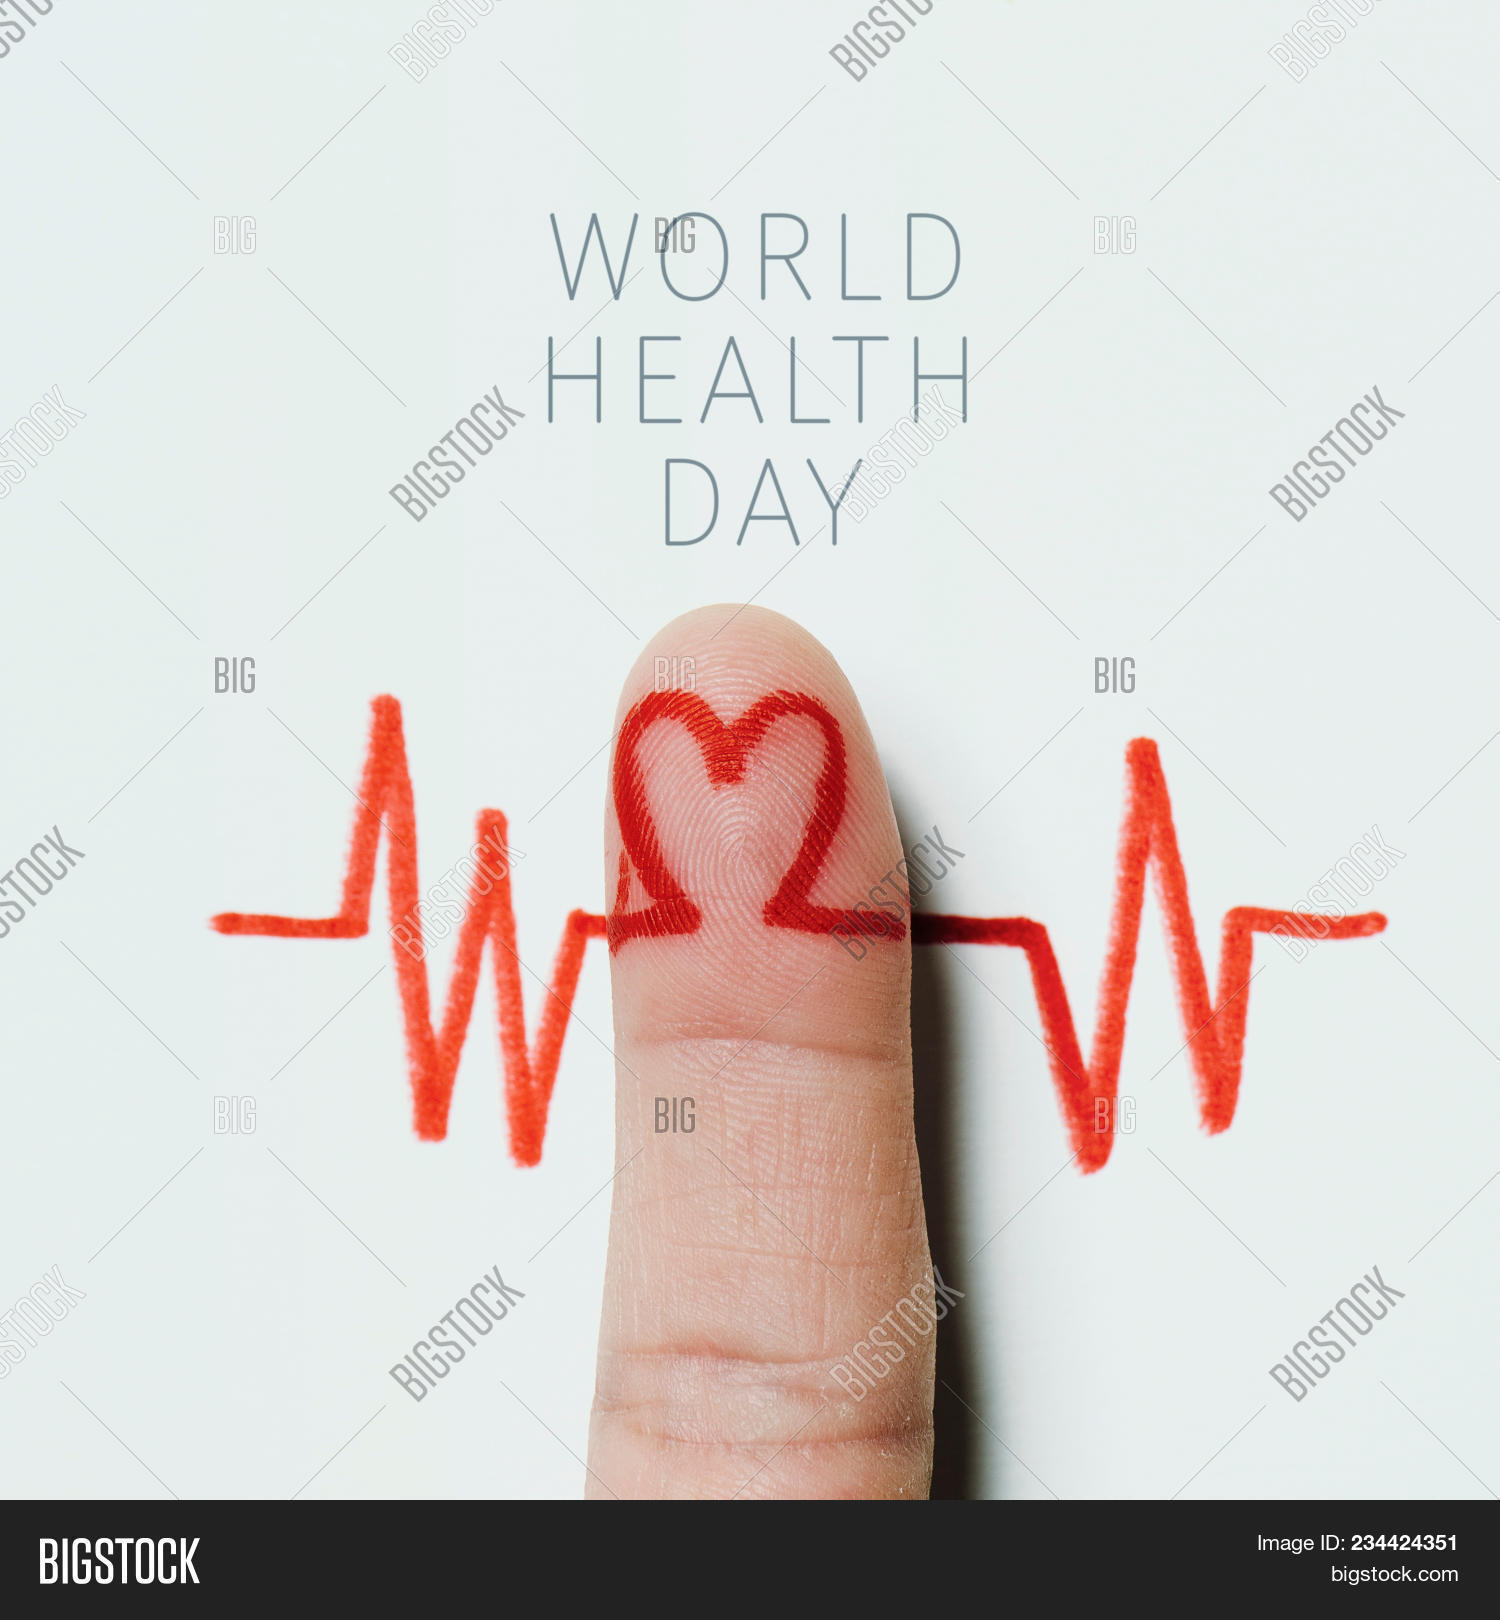 Red Heart Symbol Image Photo Free Trial Bigstock